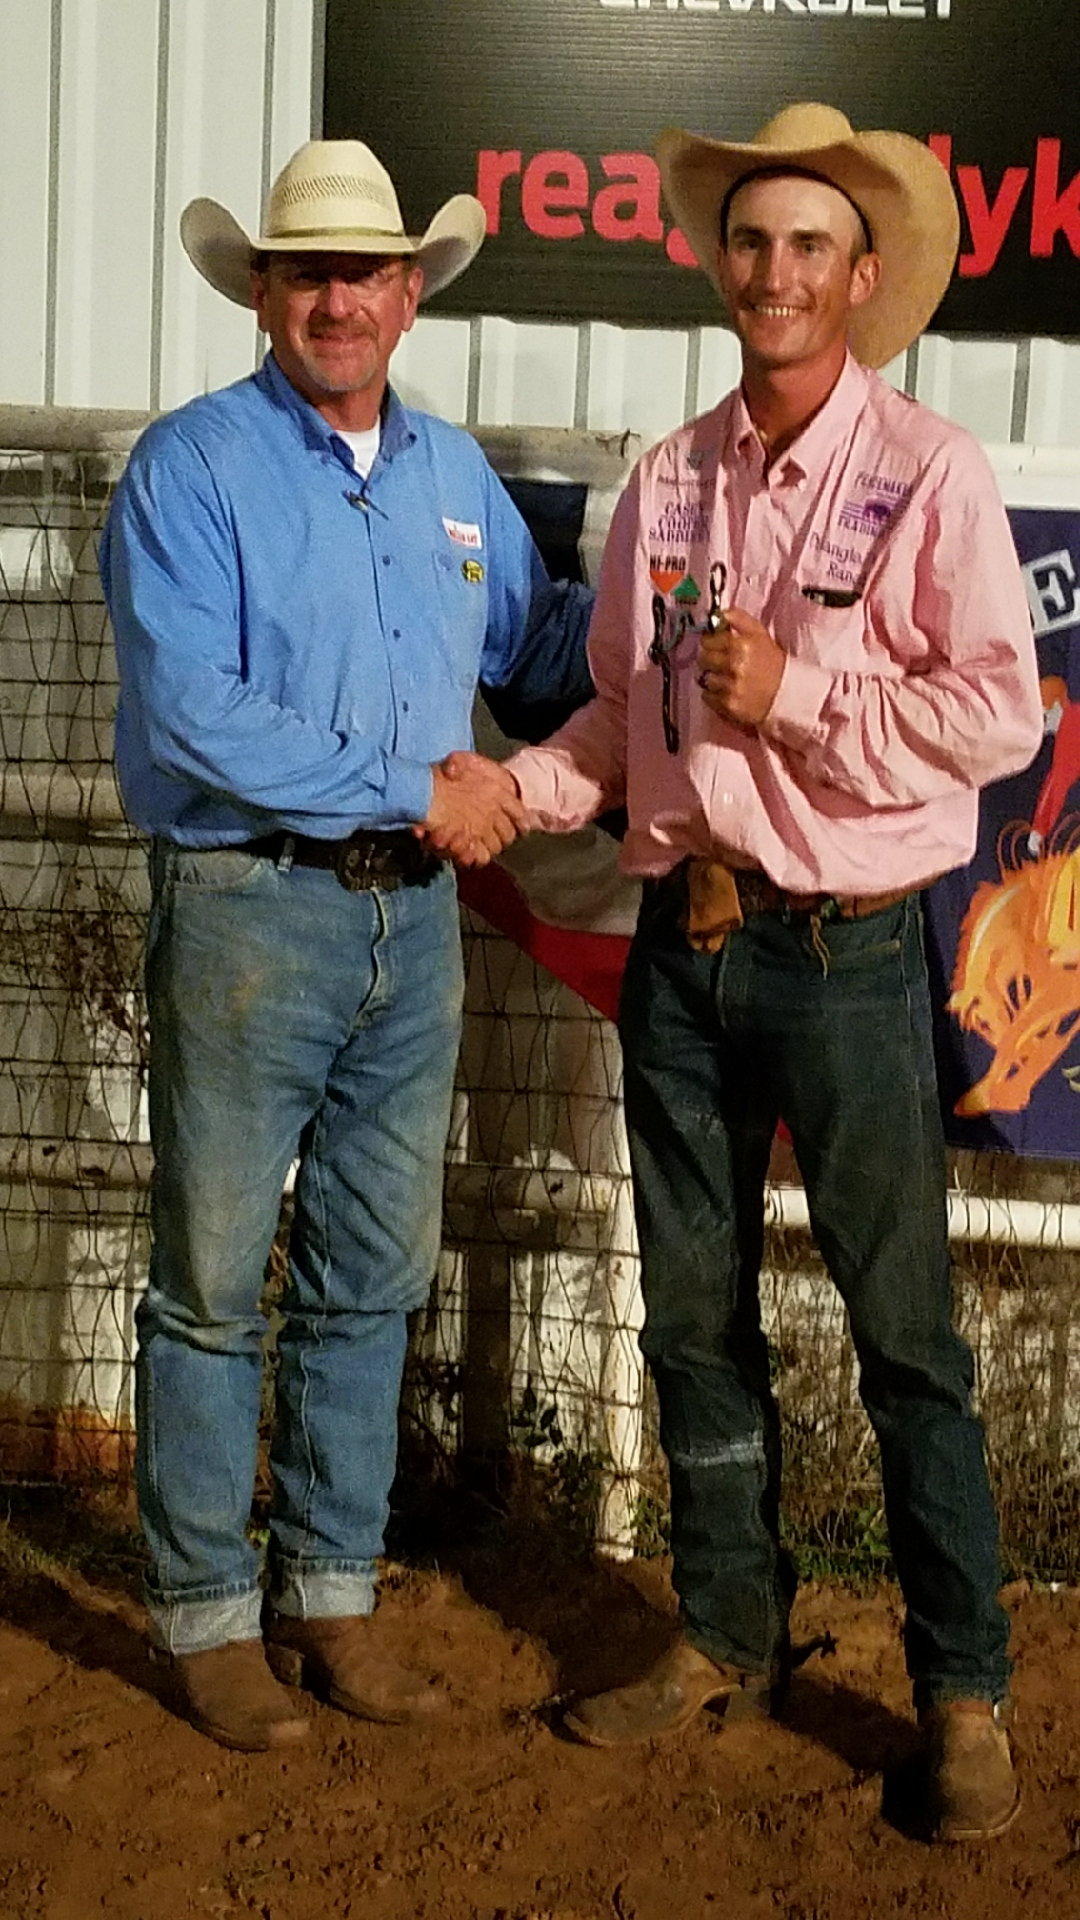 2017 Old Settler's Reunion Ranch Rodeo Honorary Top Hand Kye Fuston, Triangle Ranch / Veale Ranch